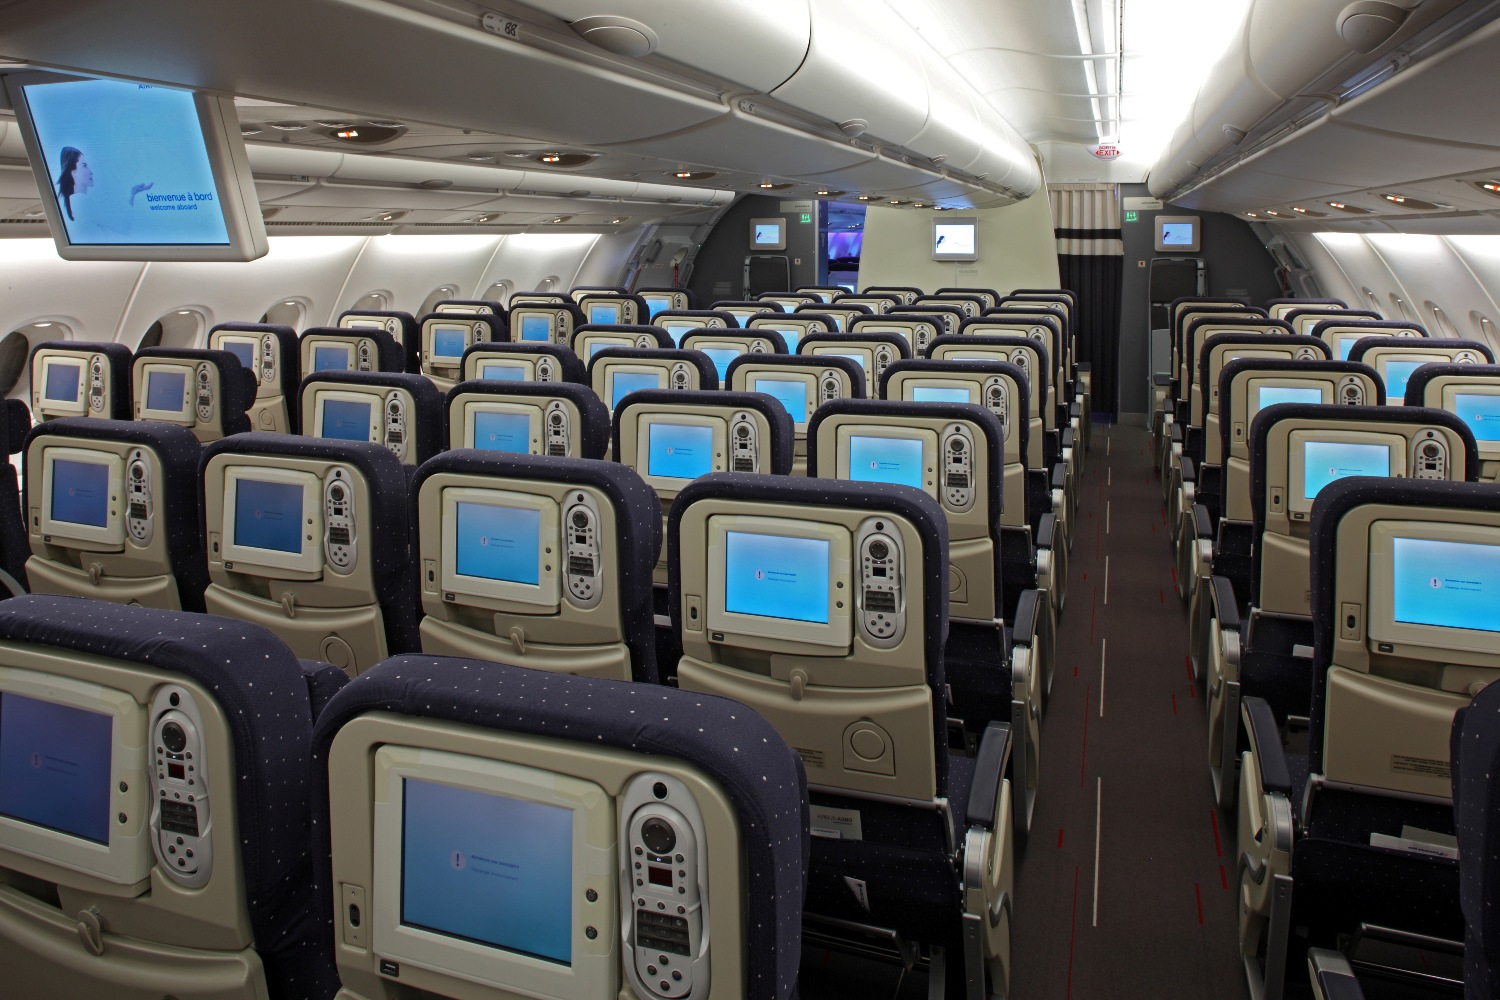 Airbus A380 Widescreen Wallpaper Airbus A380 Economy Cabin Interior